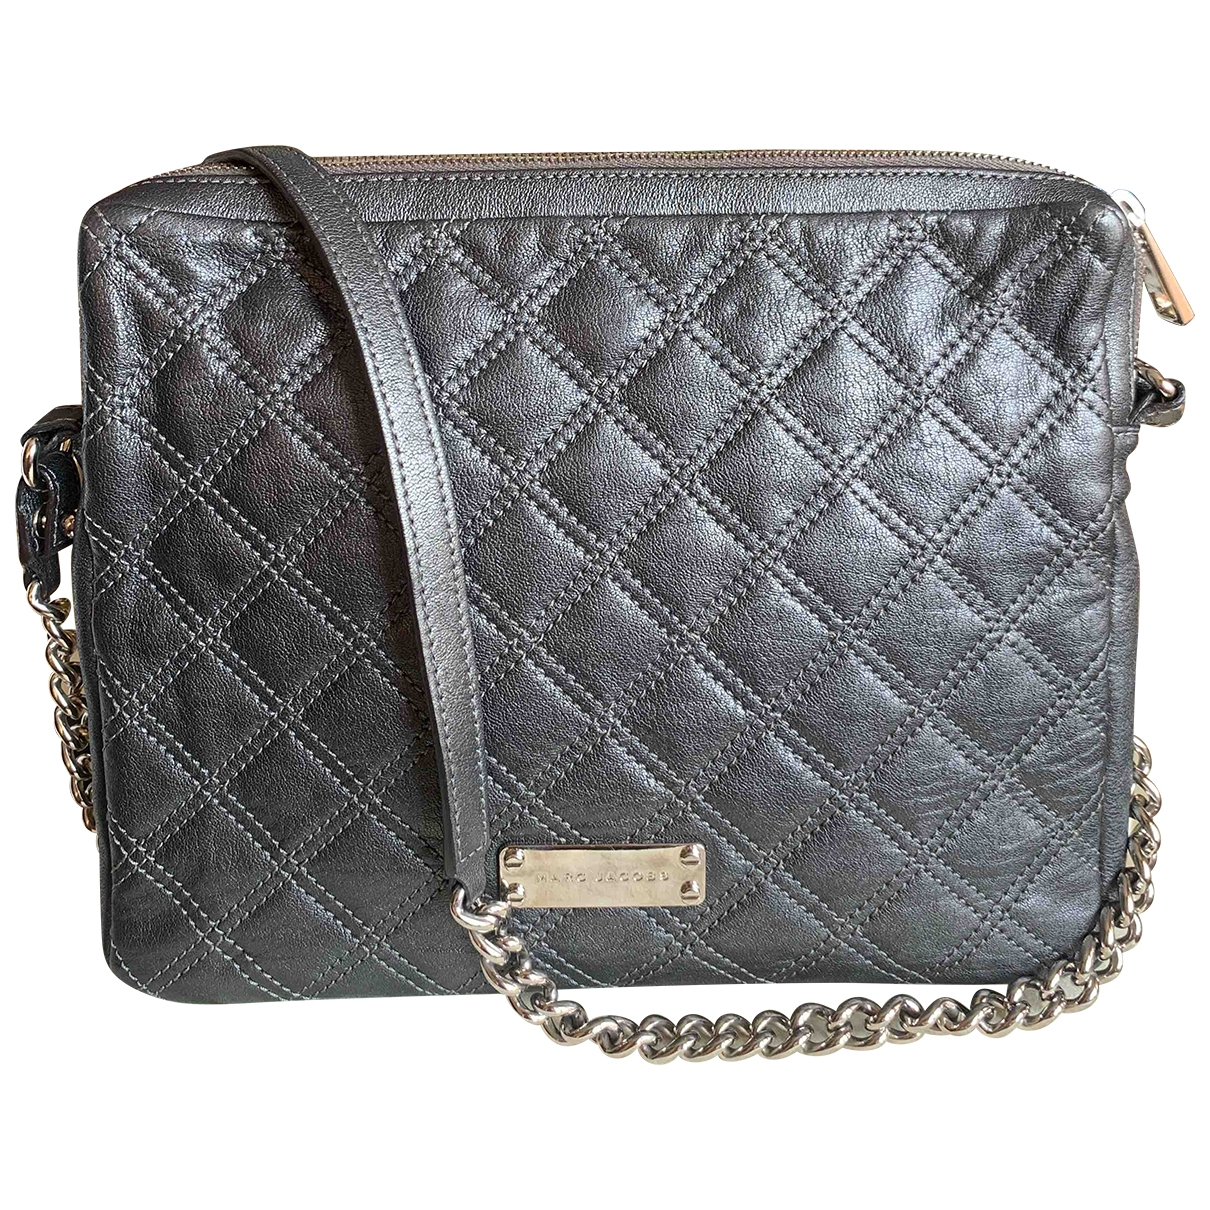 Marc Jacobs \N Anthracite Leather handbag for Women \N